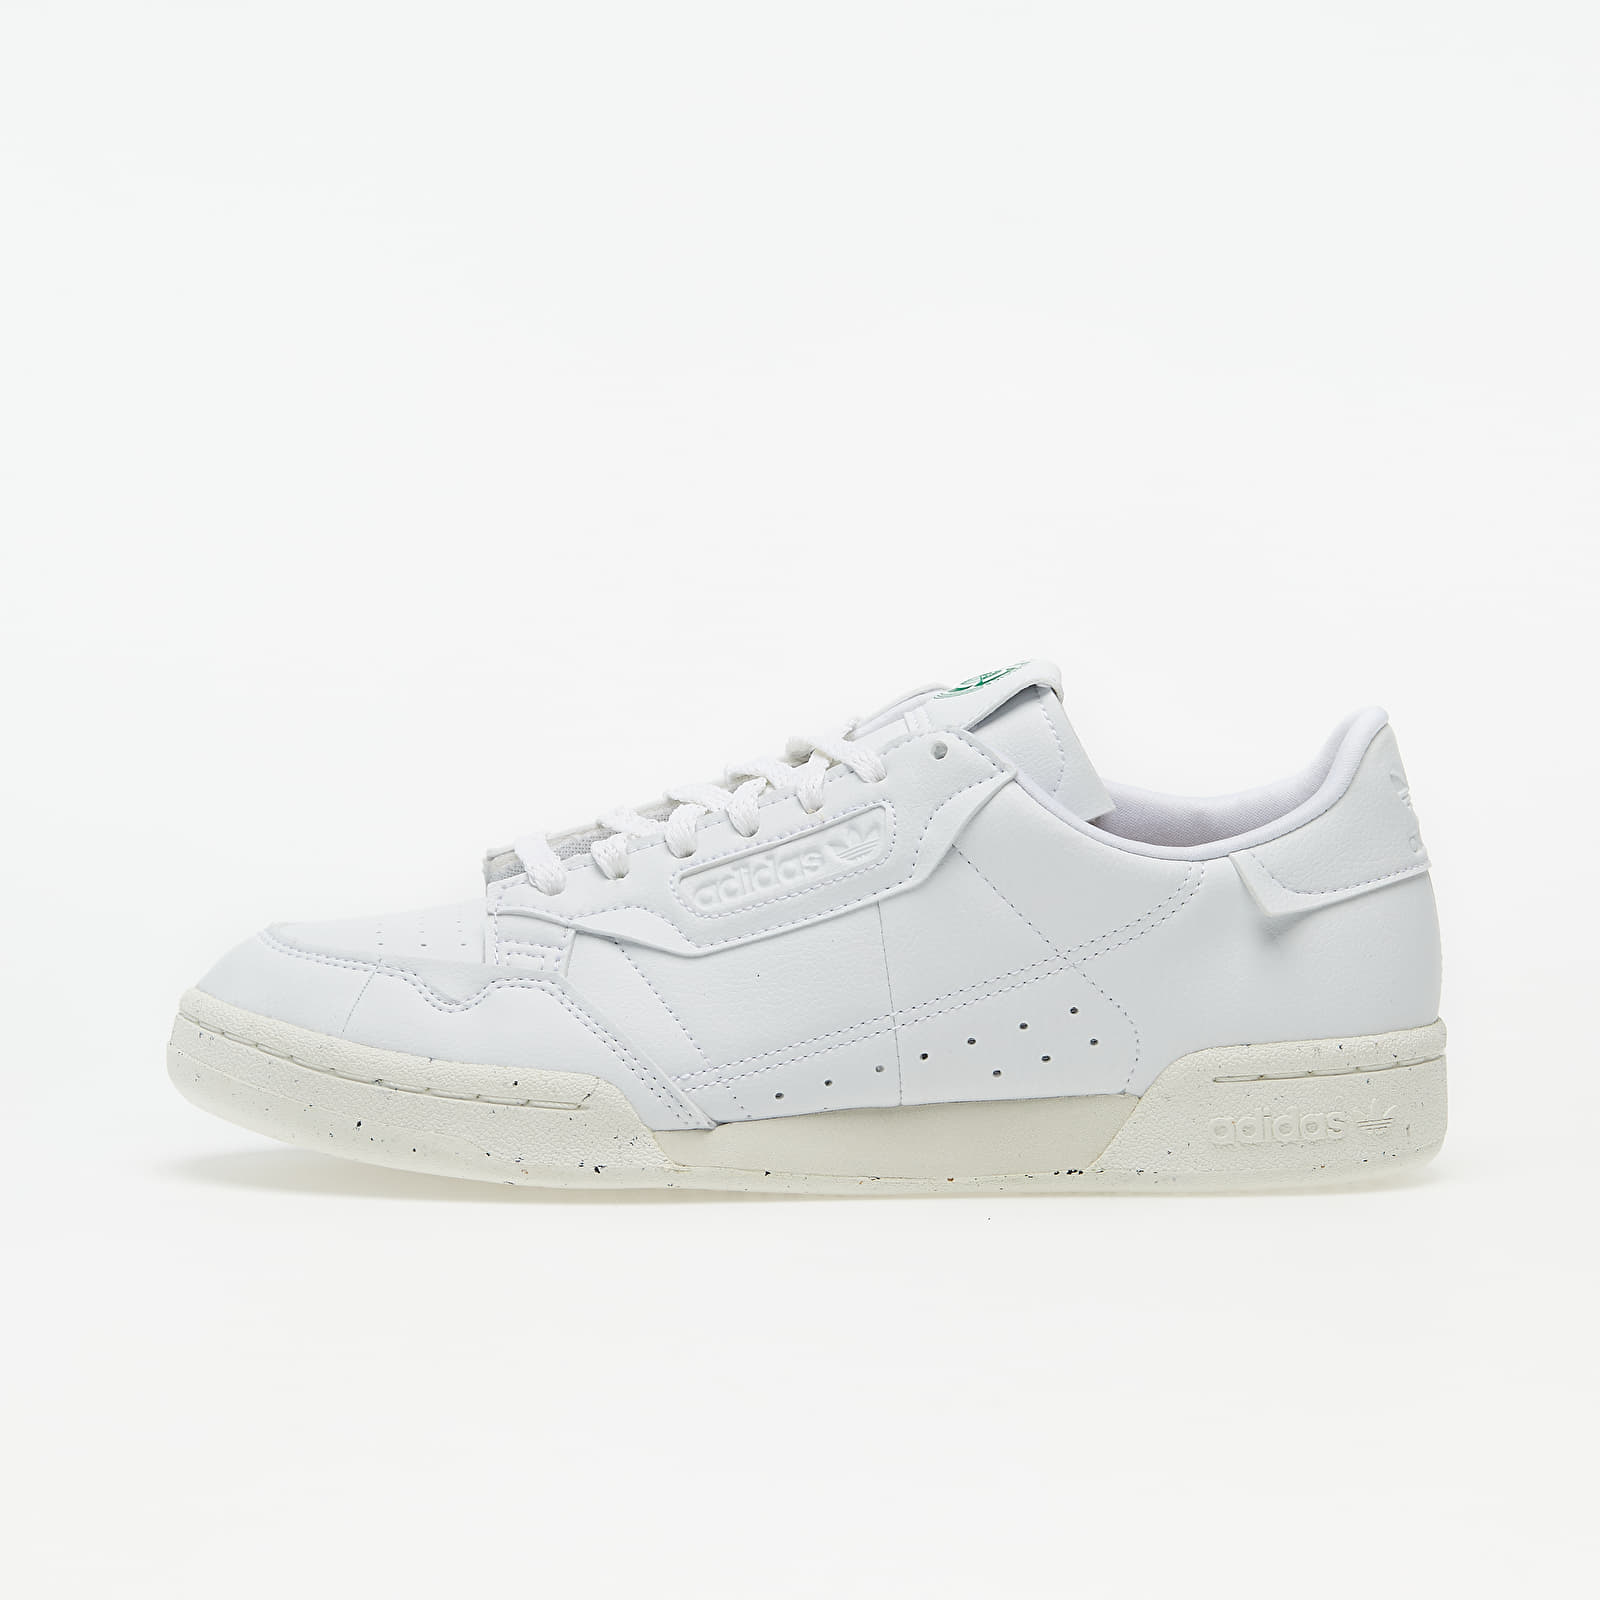 adidas Continental 80 Clean Classics Ftw White/ Off White/ Green EUR 43 1/3